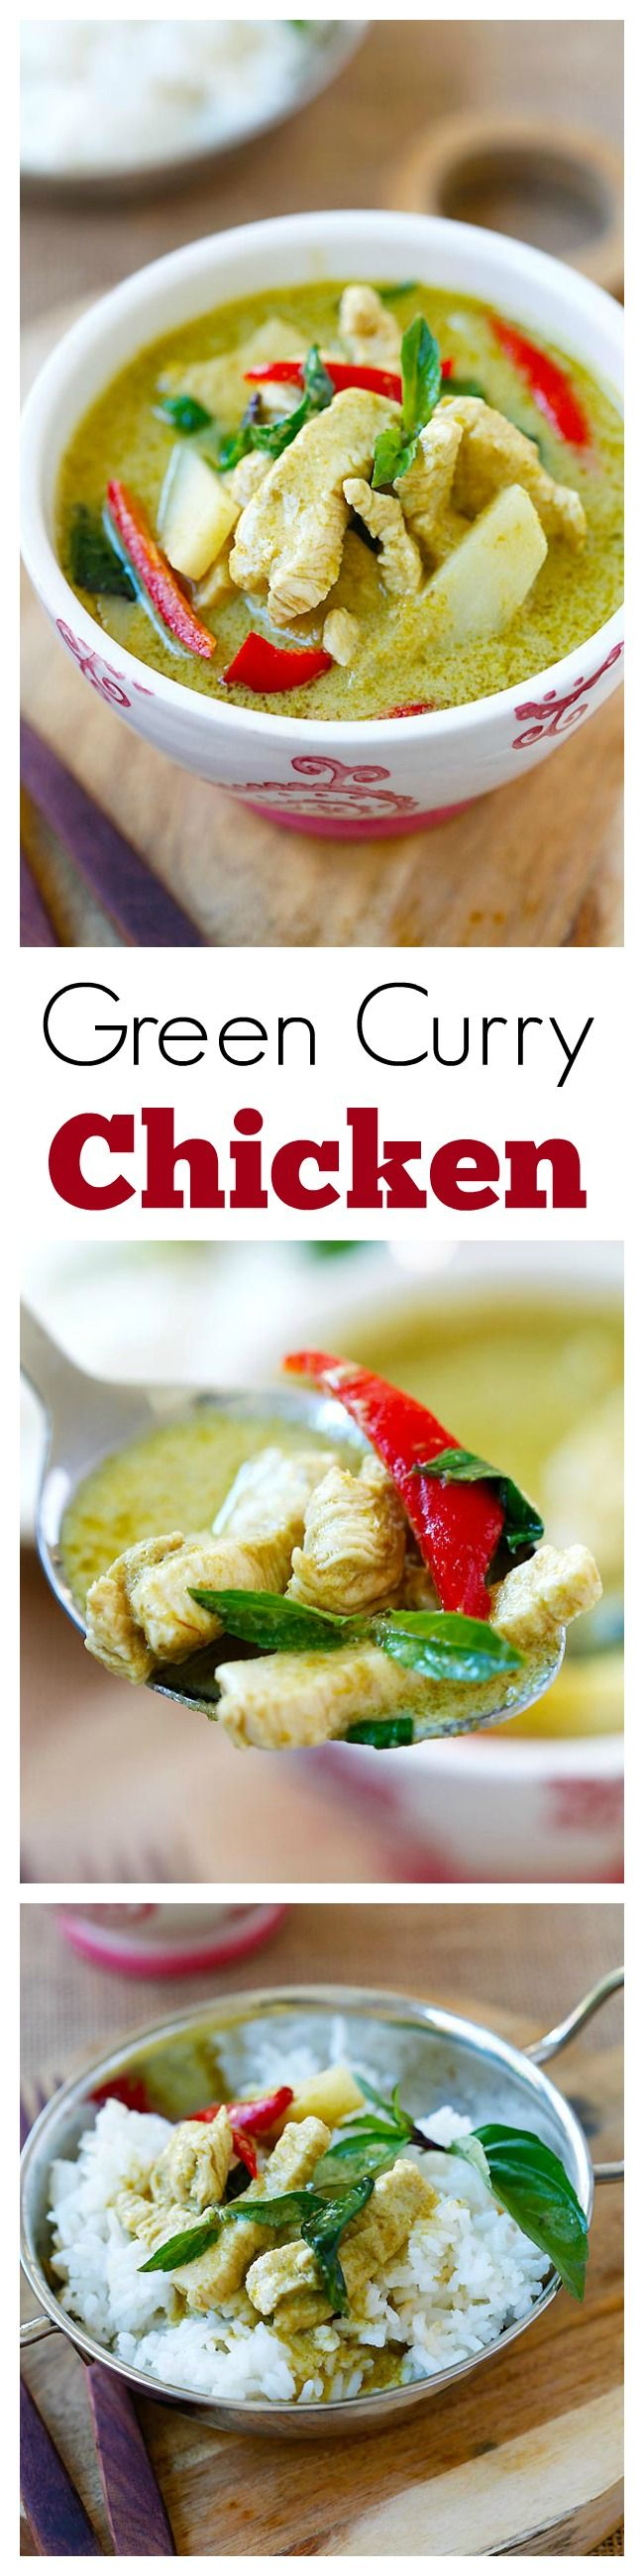 Green Curry – delicious and easy green curry with chicken. Making green curry is so easy and takes only 20 min and much cheaper than eating out.